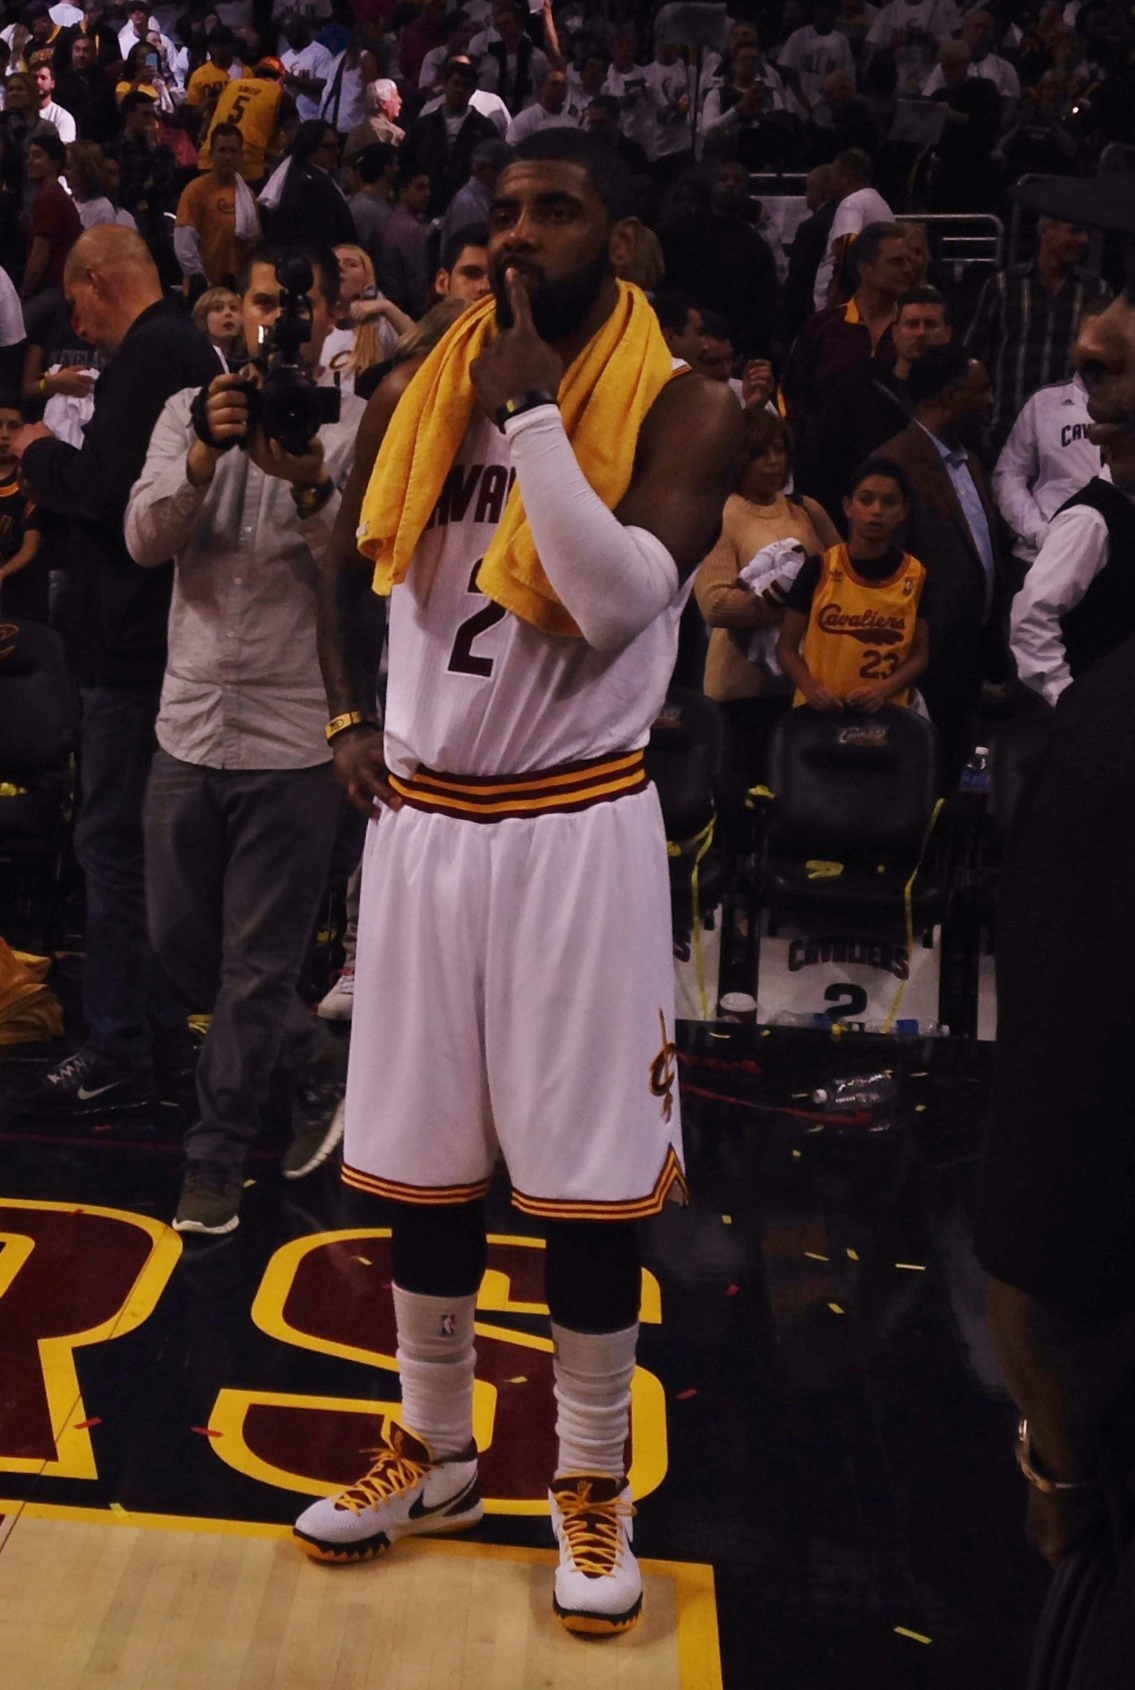 Kyrie Irving On Floor Postgame Photo vs Celts Game 1